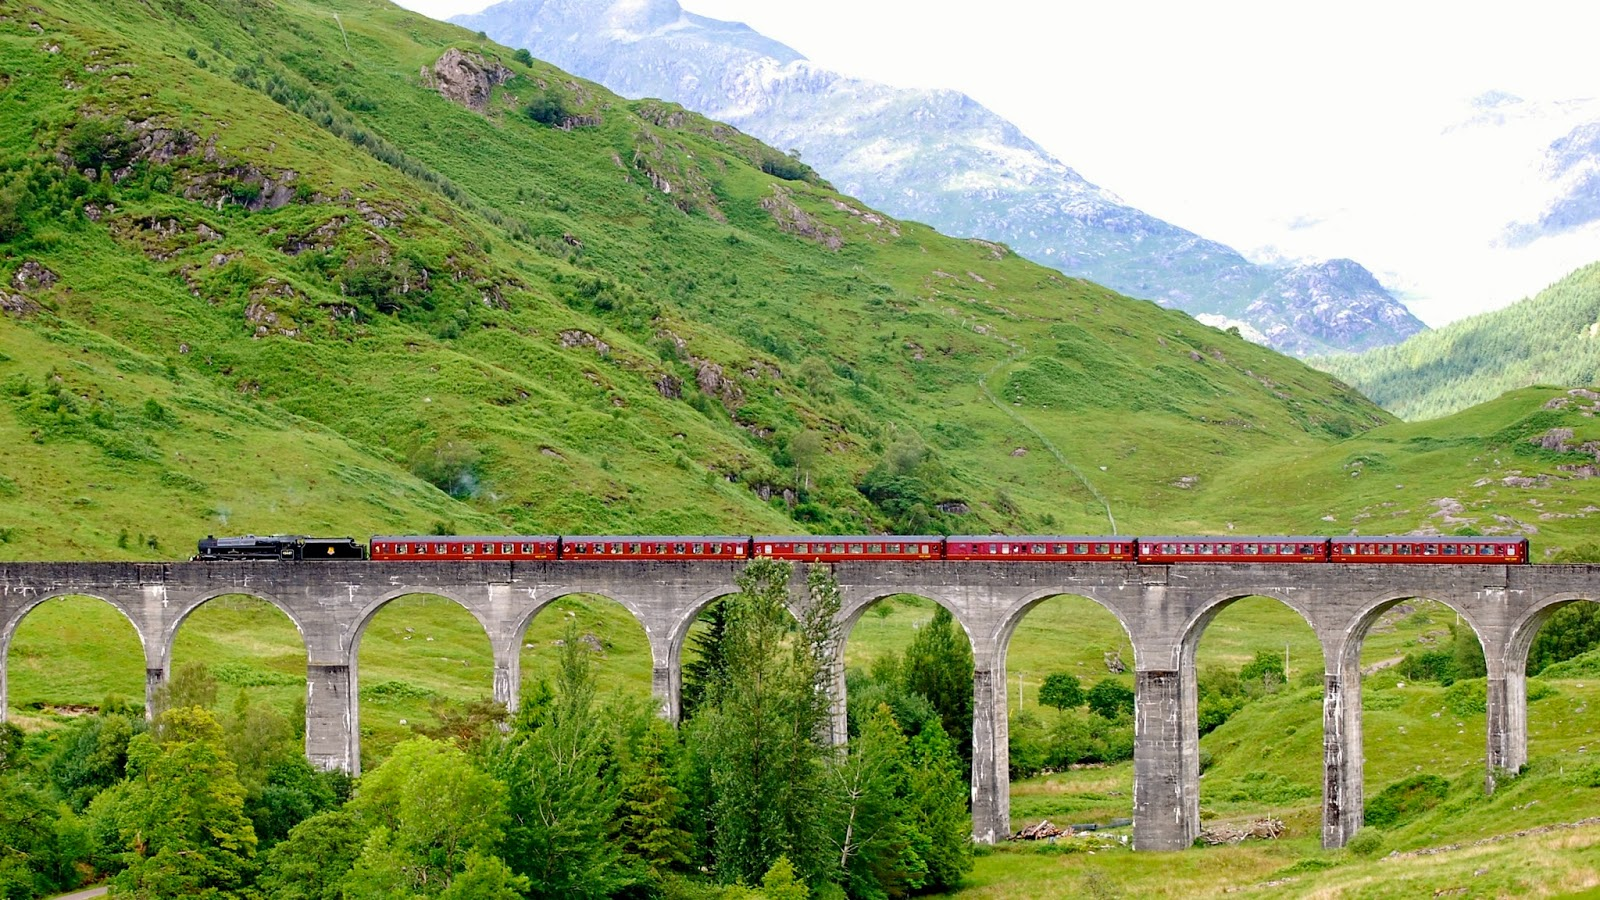 Jacobite steam train passing over the Glenfinnan Viaduct